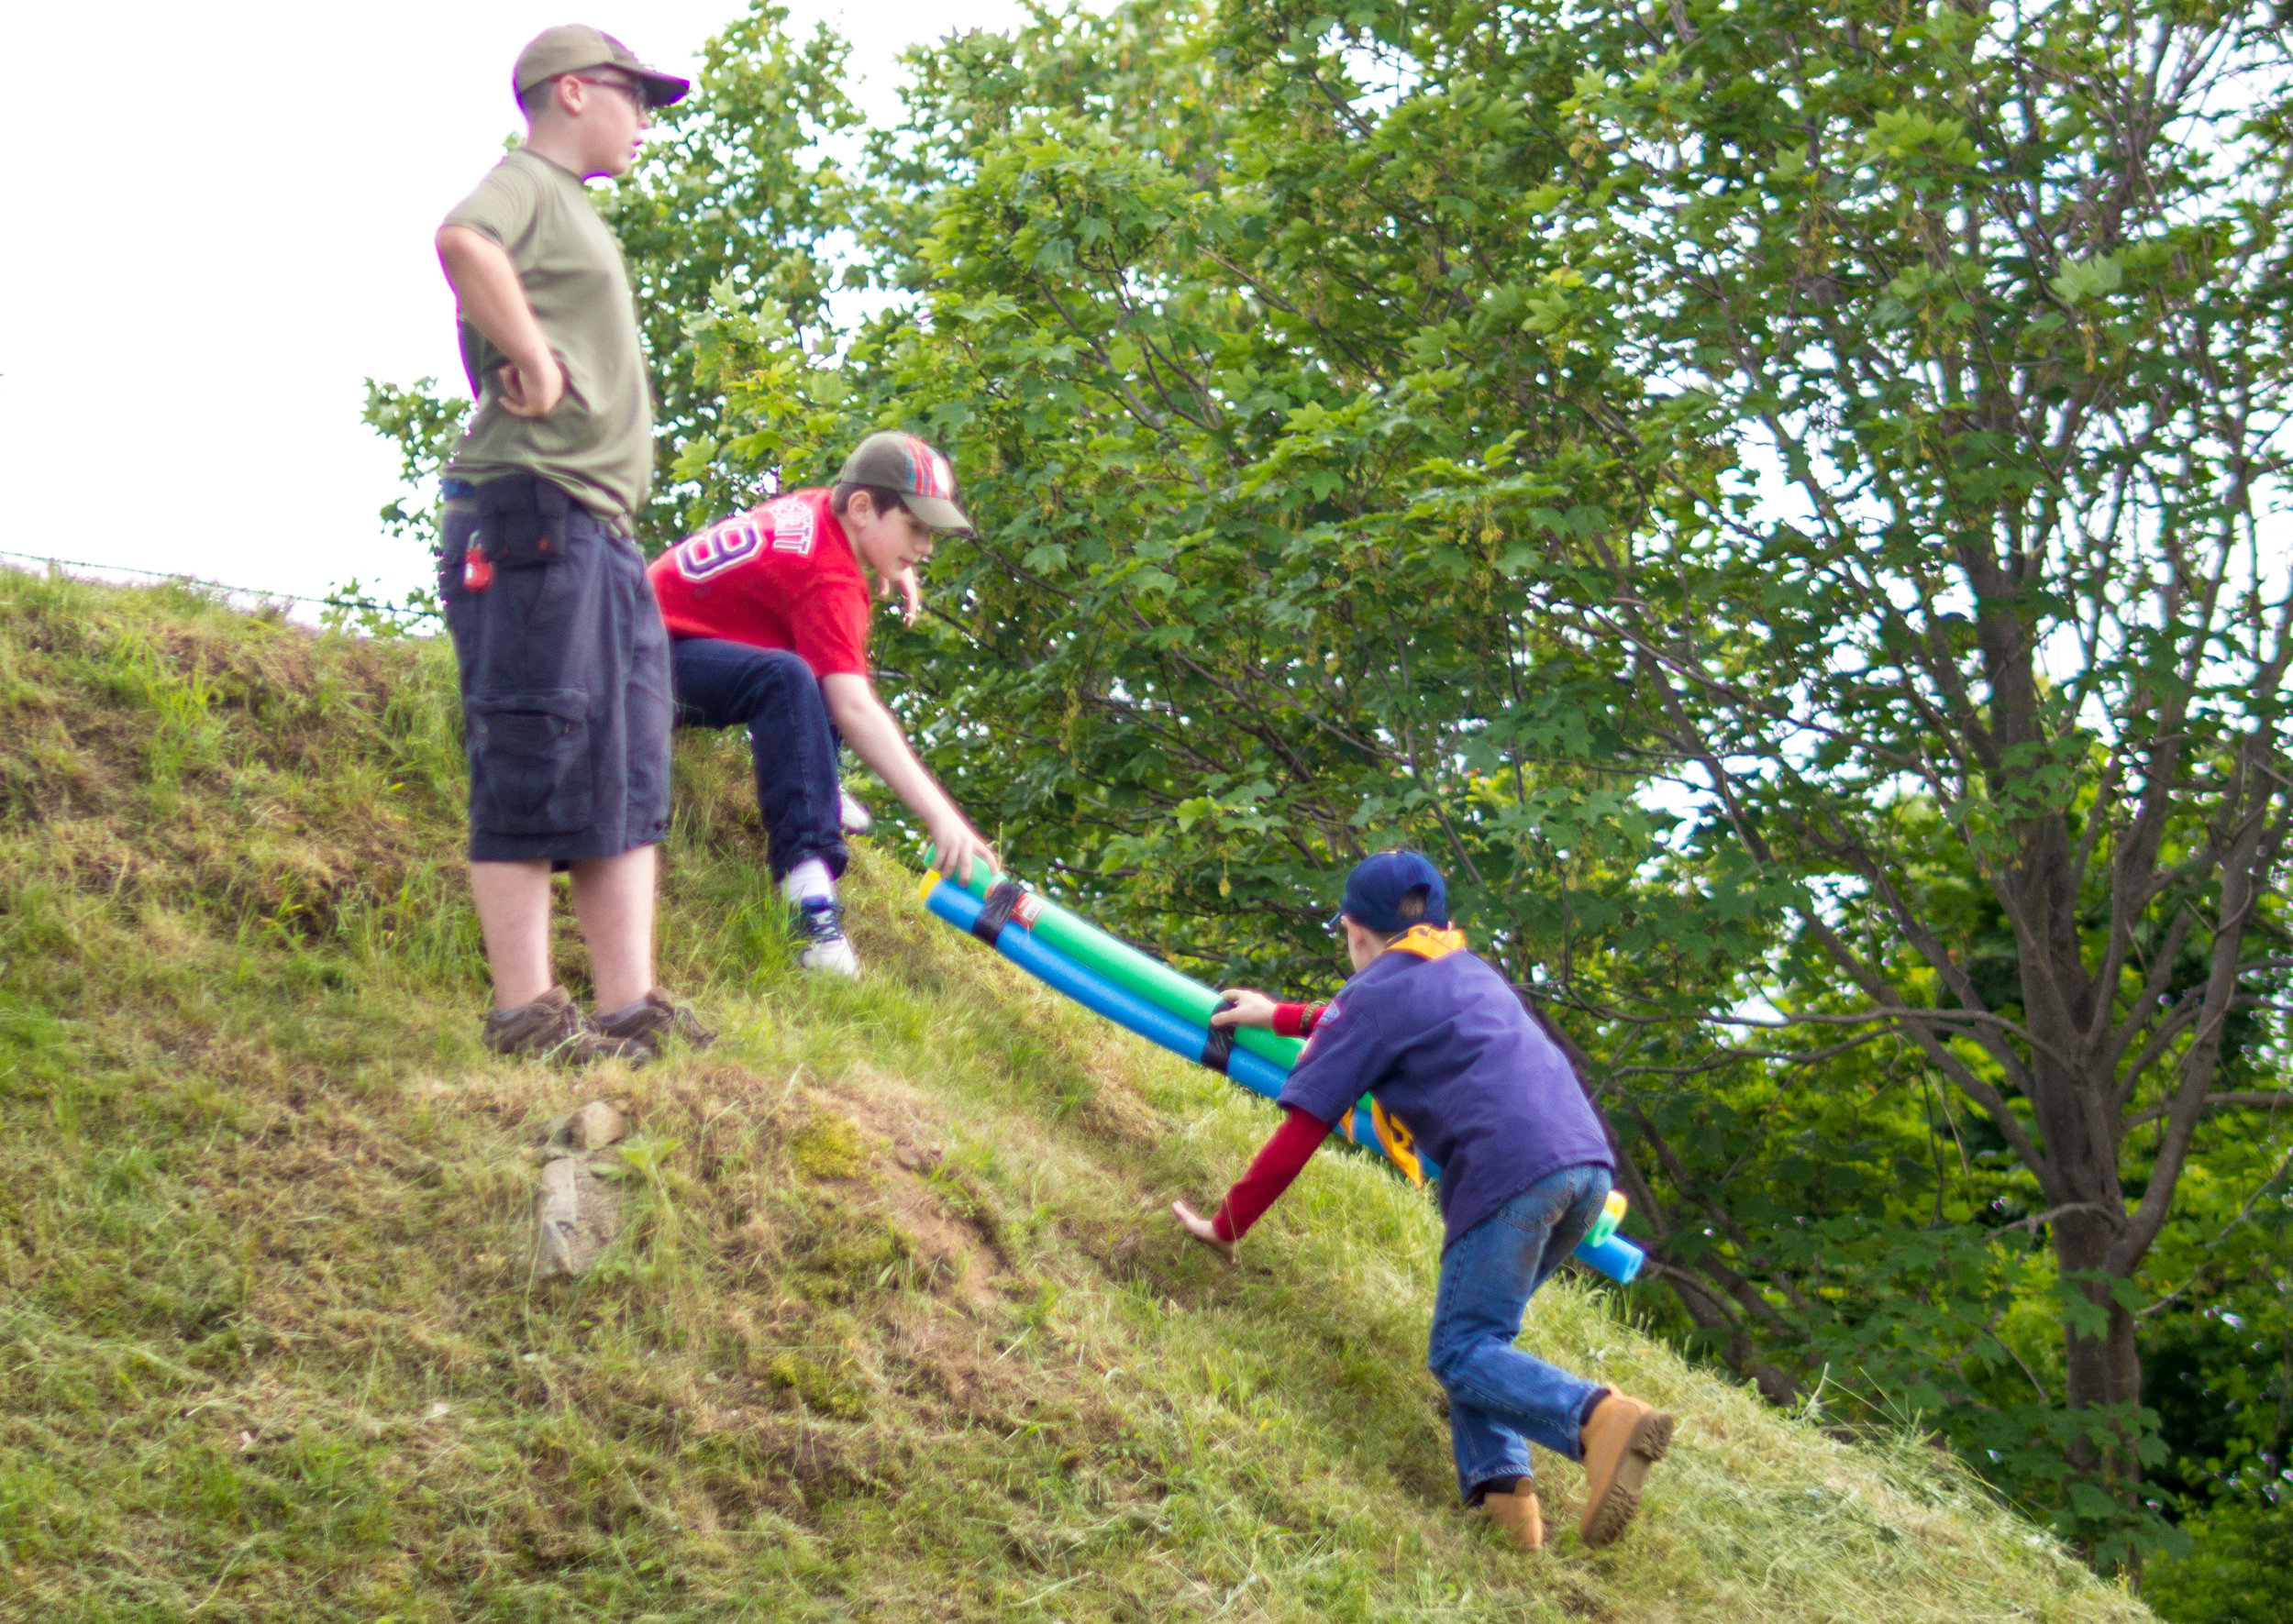 Cub Scouts Obstacle Course_07.jpg